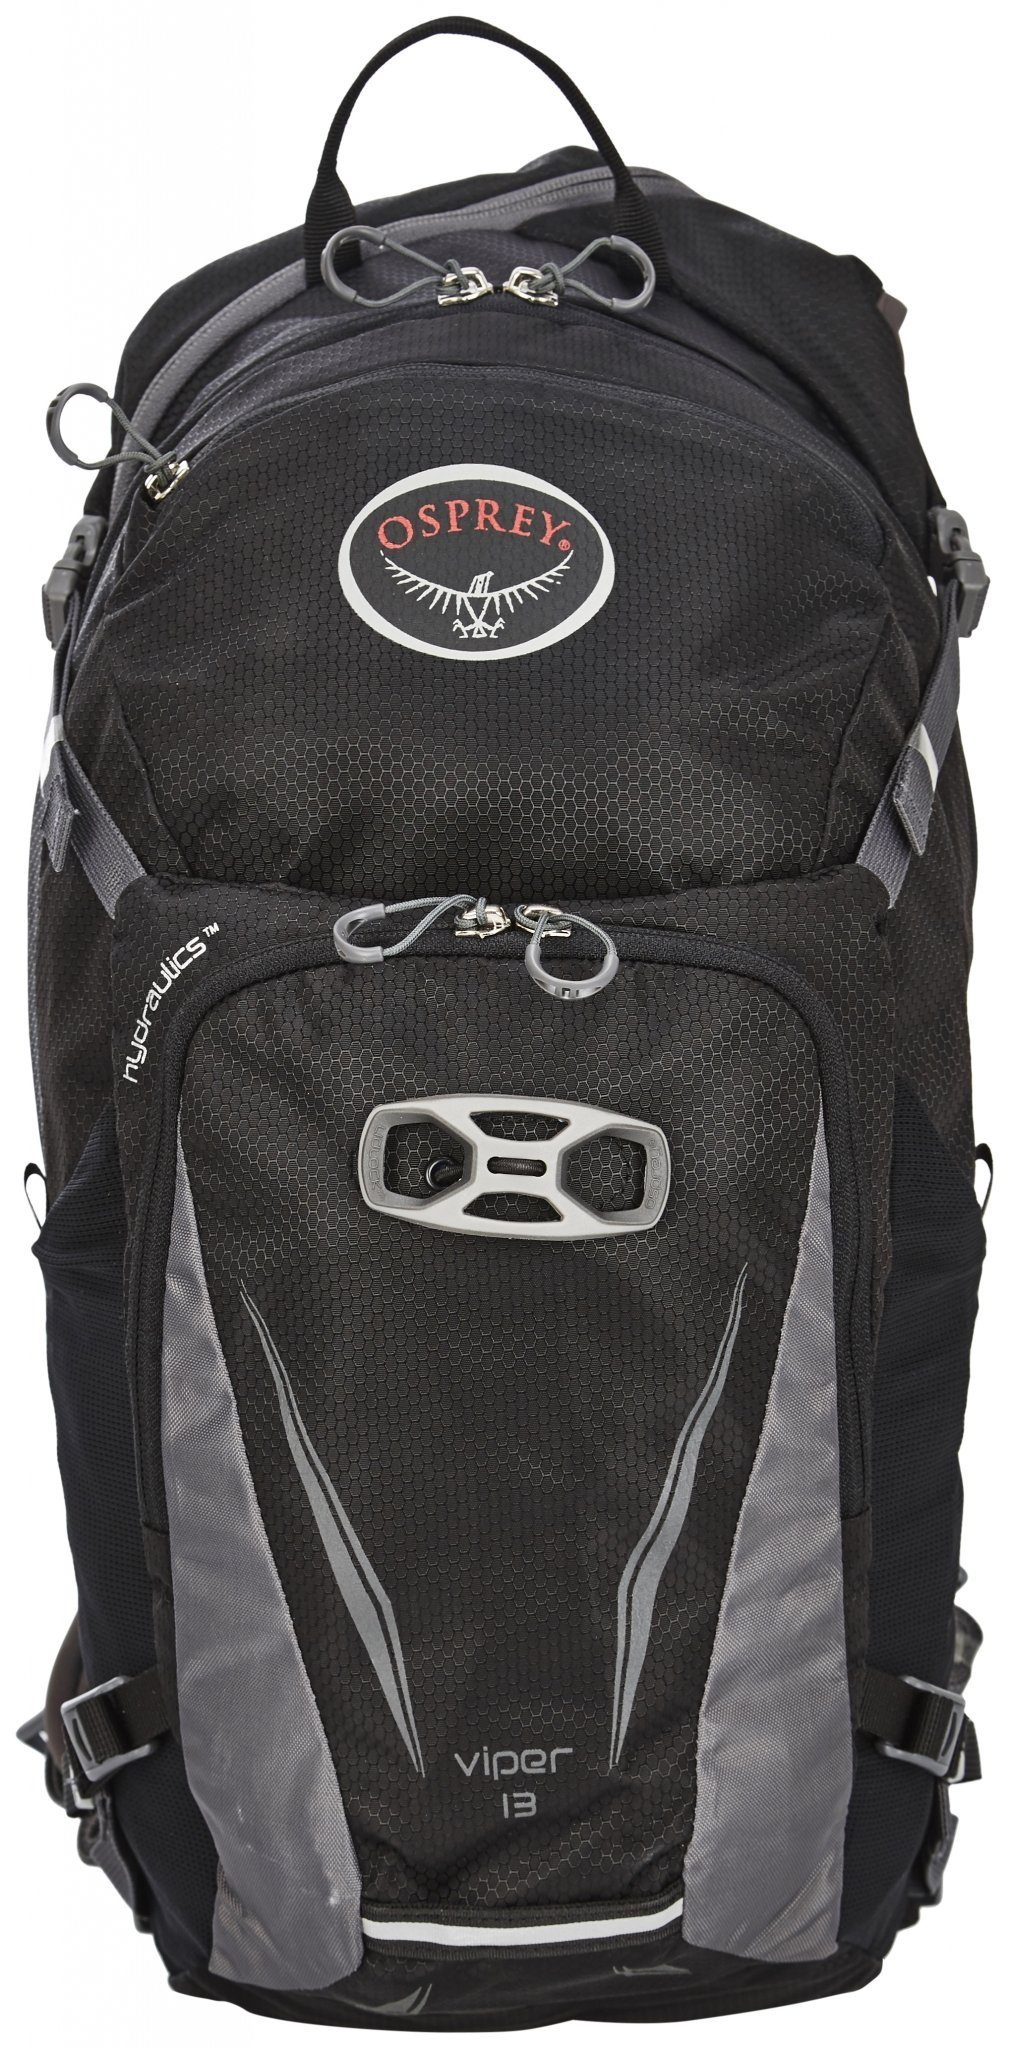 Osprey Rucksack »Viper 13 Backpack Men«